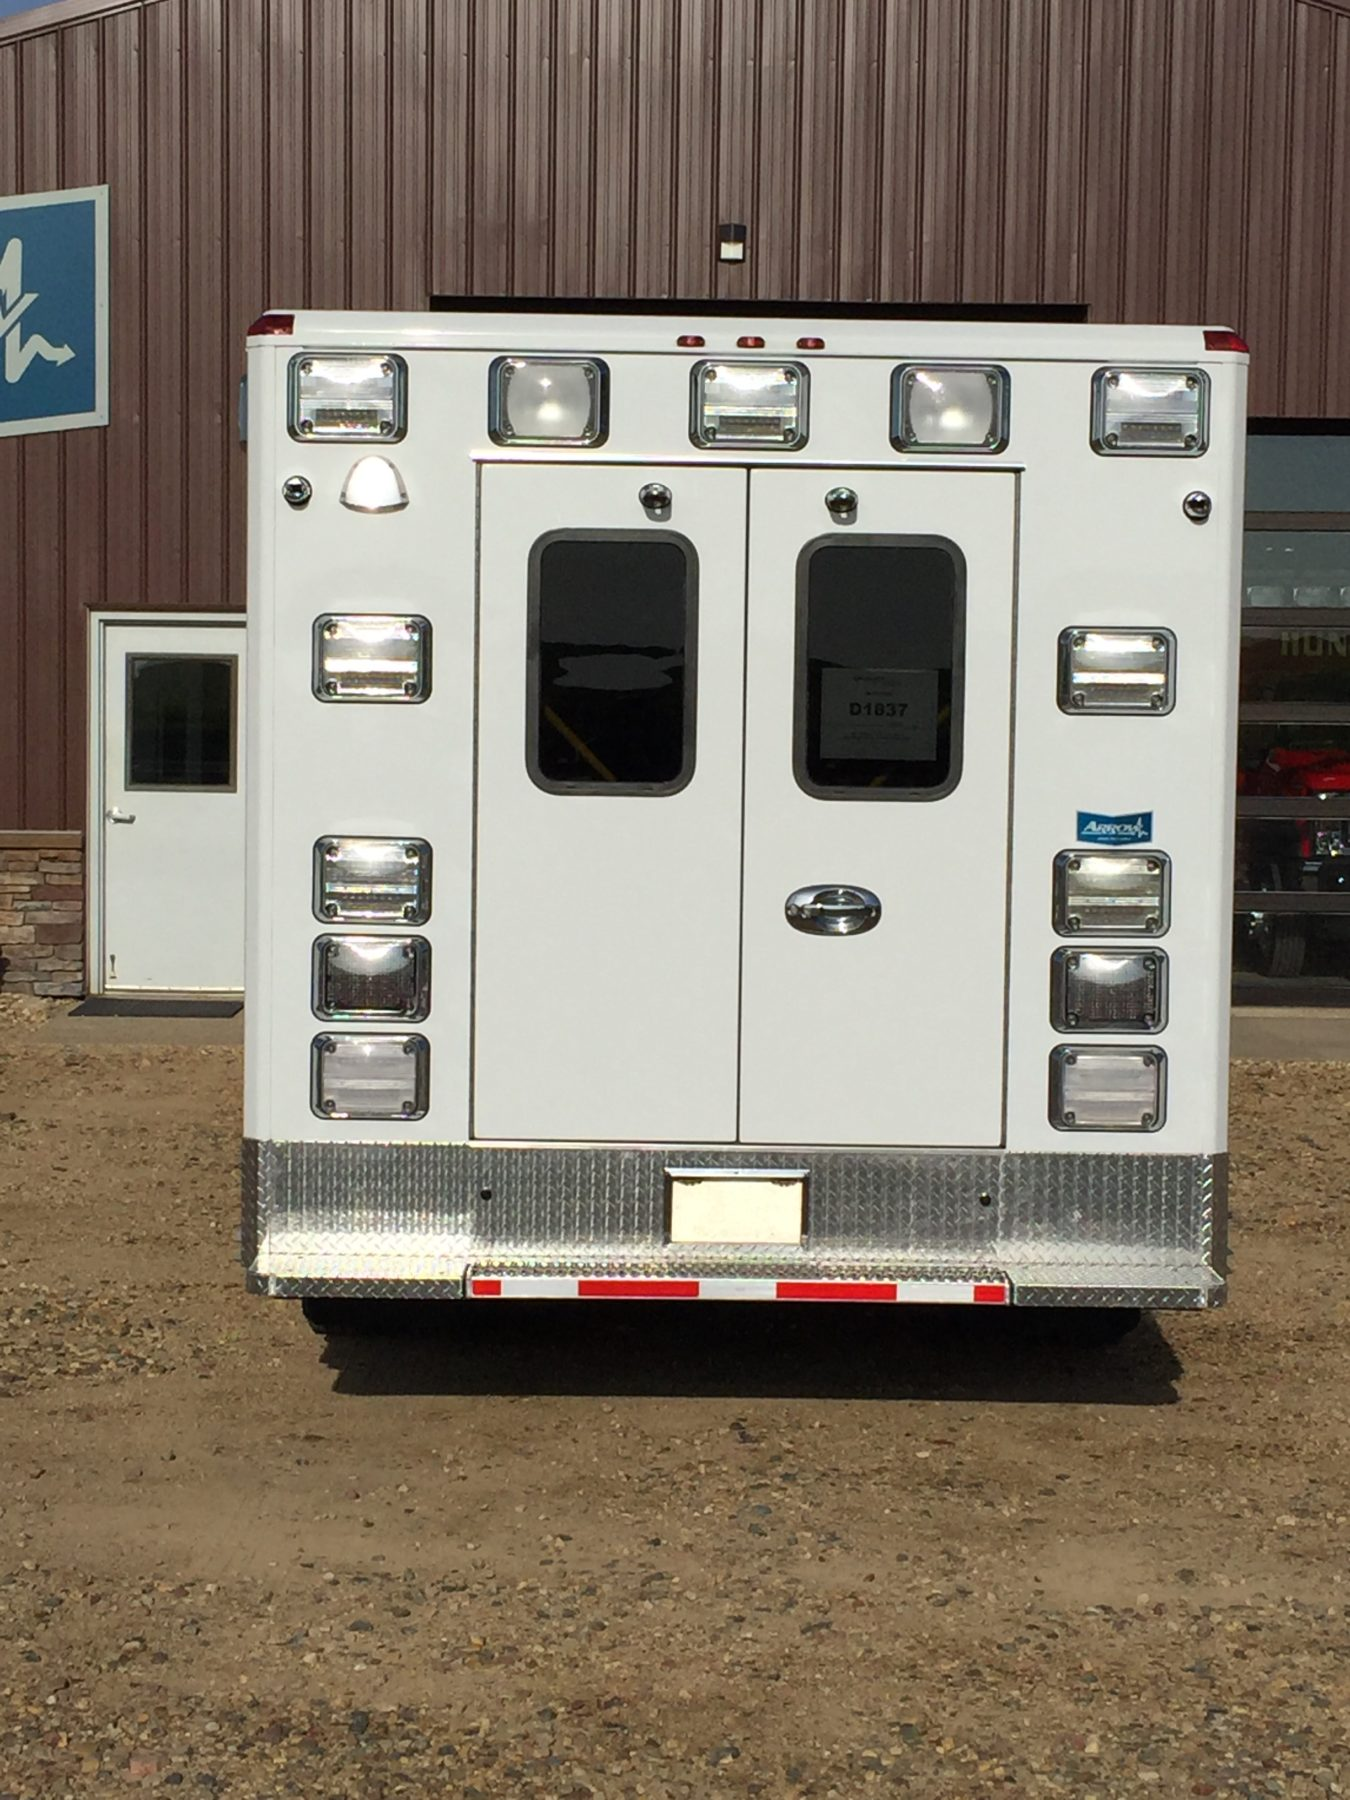 2019 Chevrolet K3500 4x4 Type 1 Ambulance For Sale – Picture 8